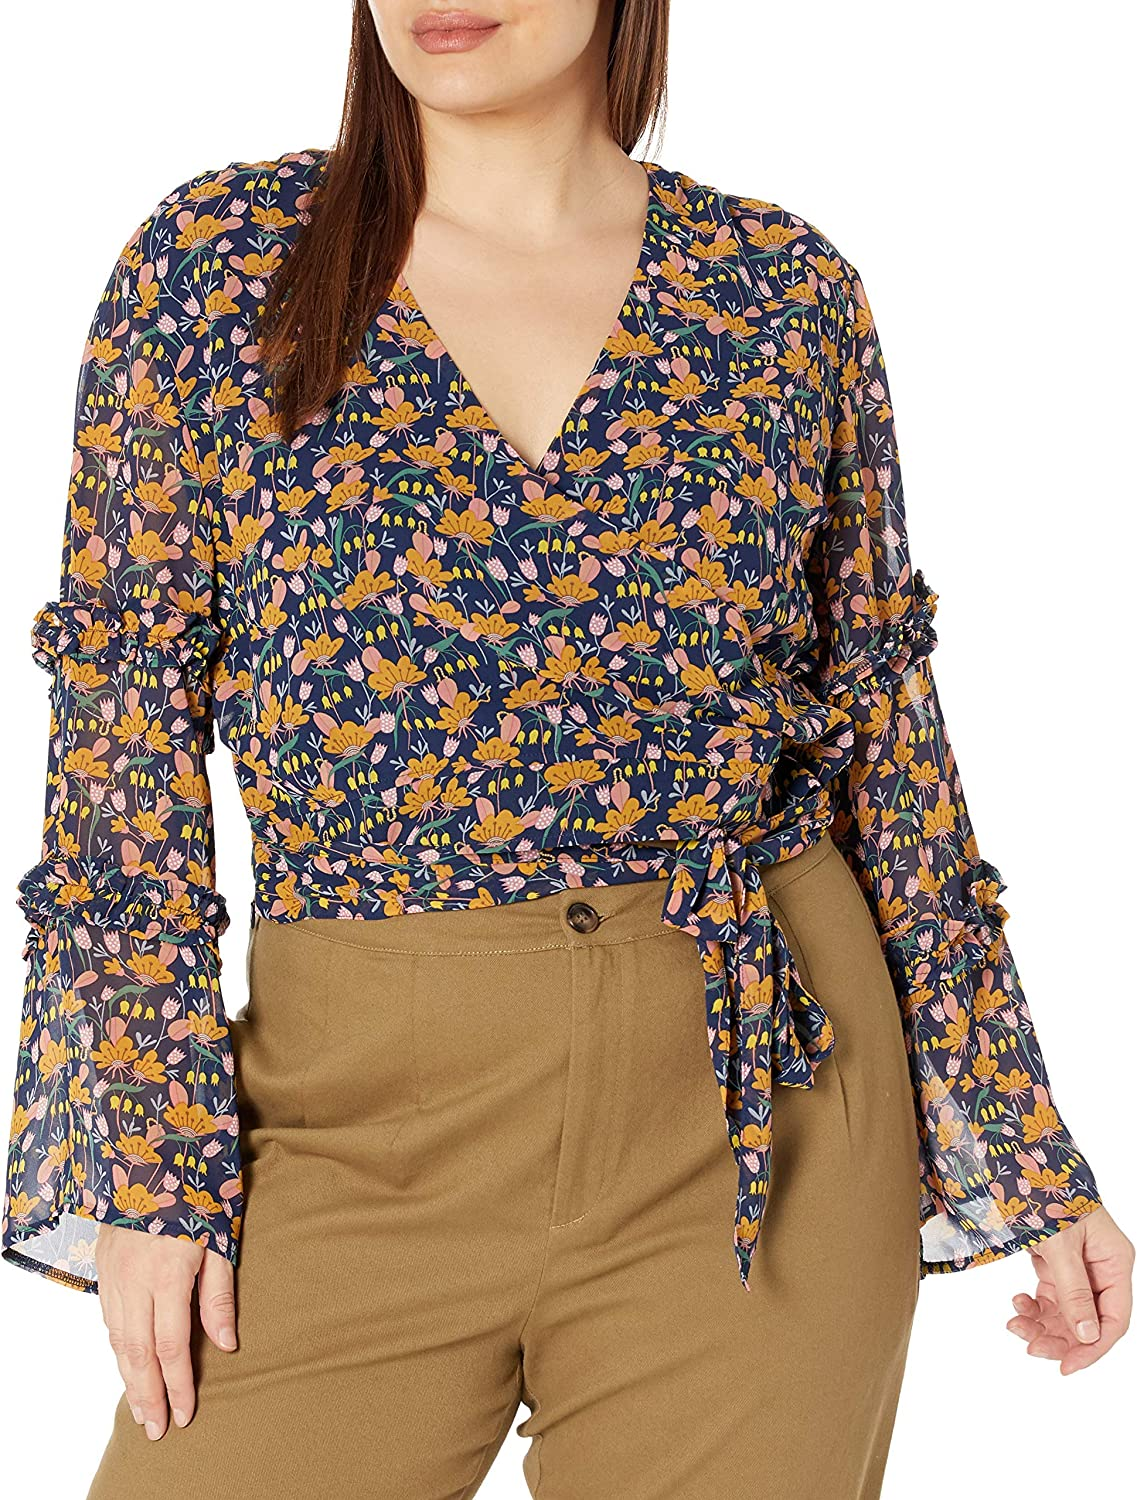 KENDALL Large special price + KYLIE Women's Ruffle 25% OFF Bell Sleeve Waist Tie with Blouse